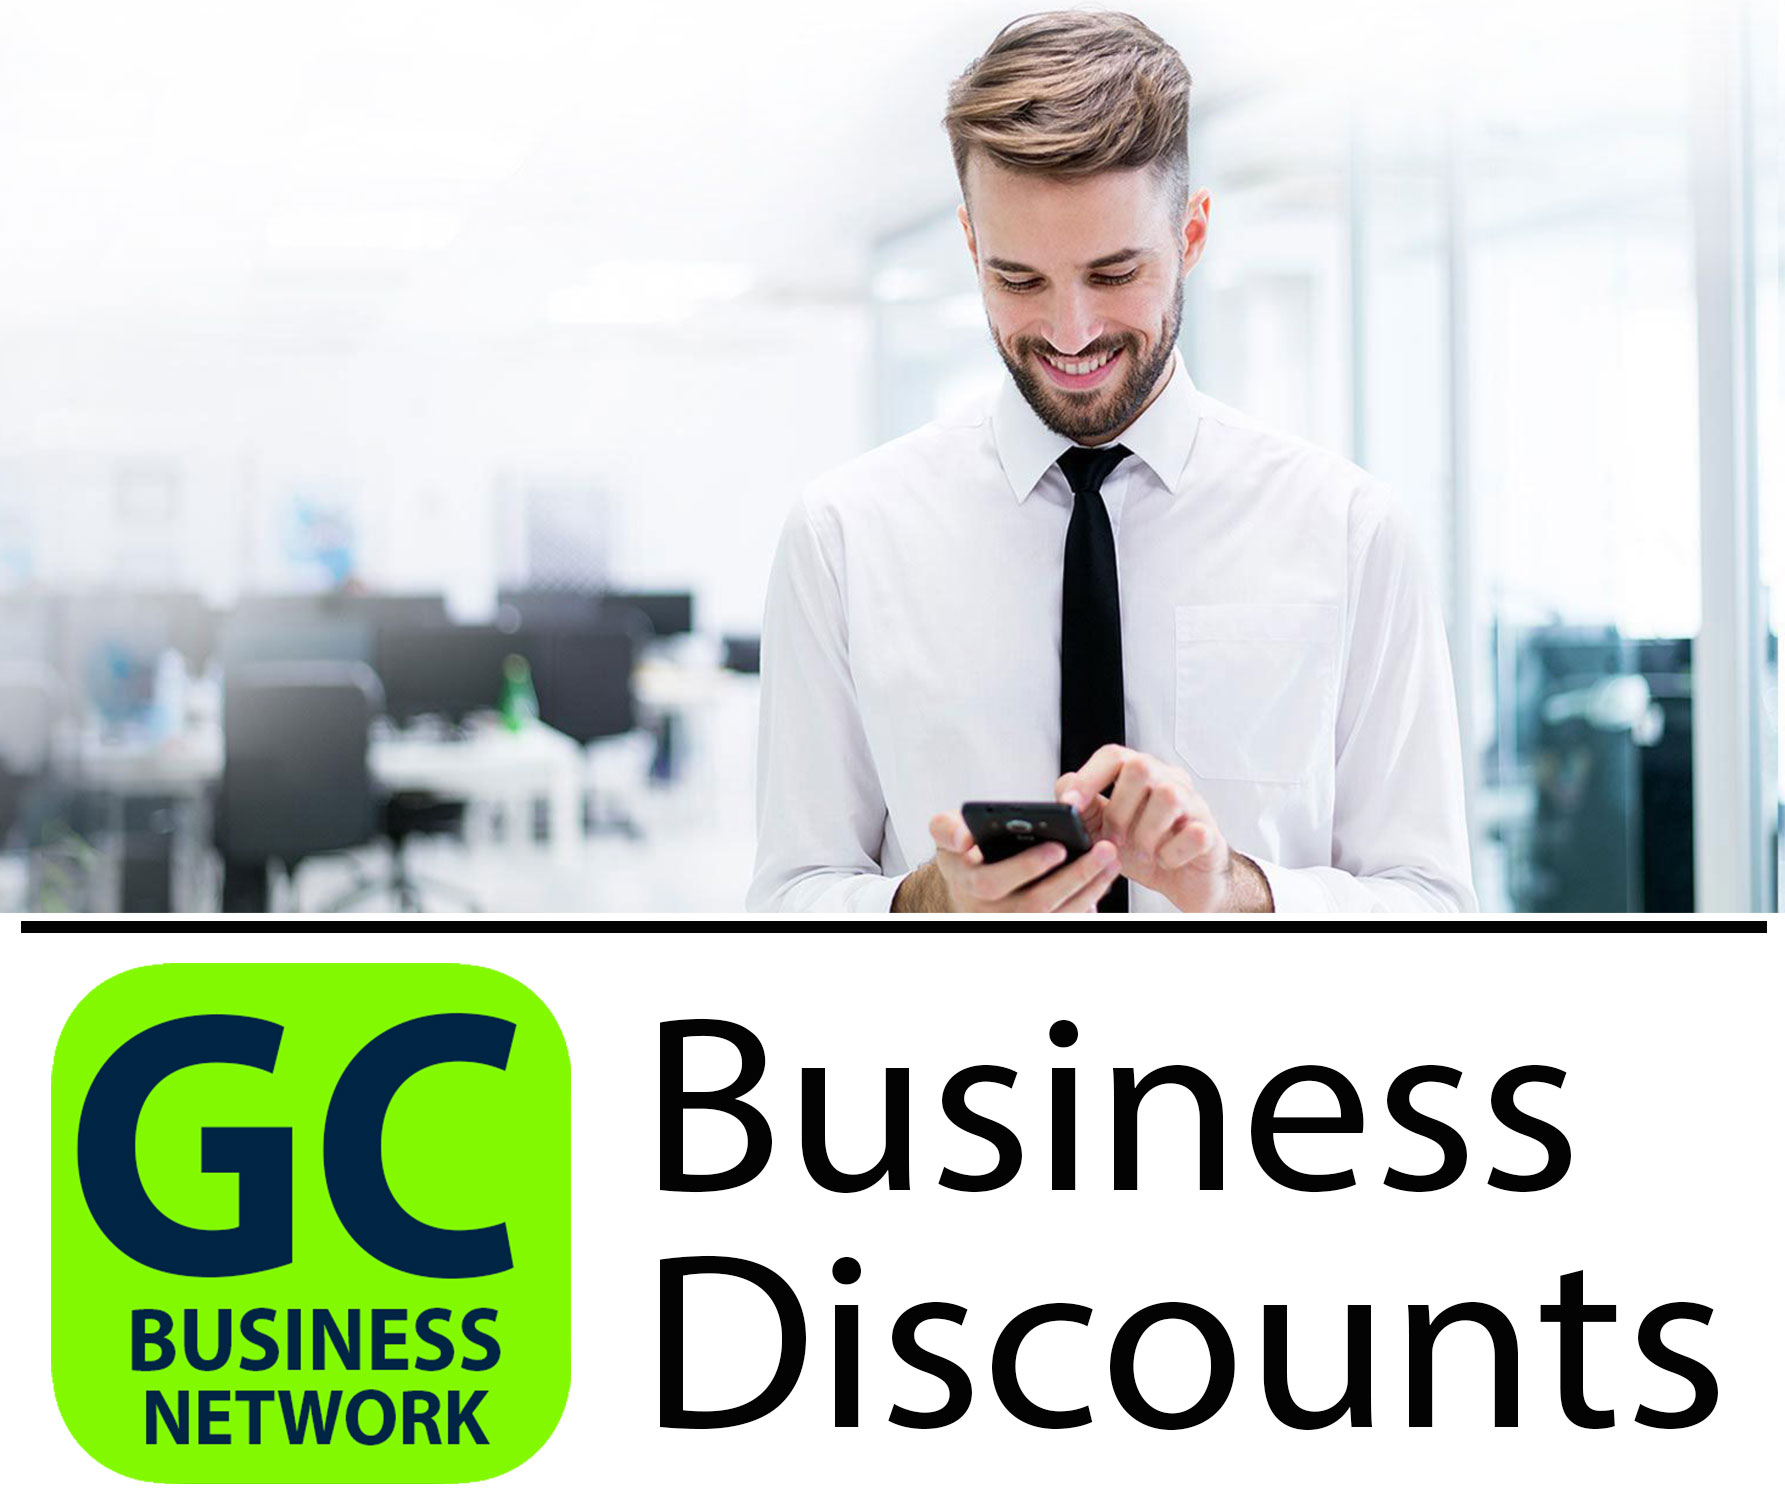 business-network-discounts